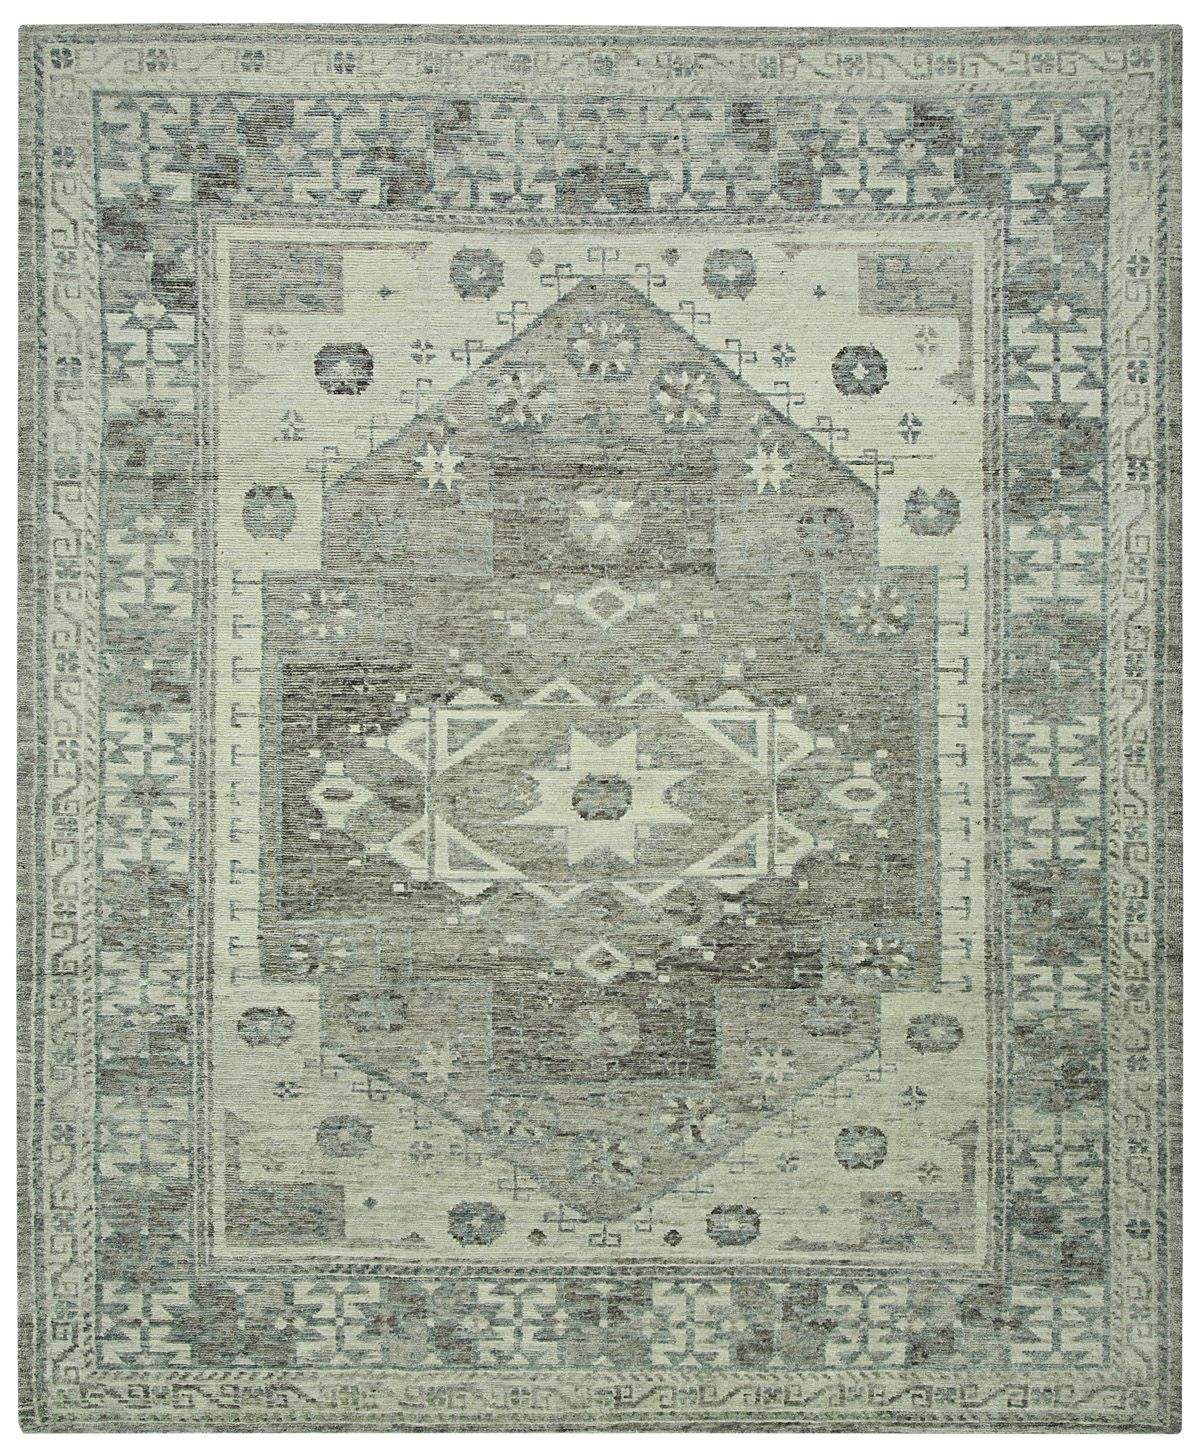 Southwestern and tribal influences are combined to create a timeless yet contemporary motif in the Bronte transitional rug. Embracing a geometric pattern and a marvelous color scheme, this handcrafted rug is made in Nepal from 100% wool and is sure to make an impact. http://www.cyrusrugs.com/cyrus-artisan-item-1074&category_id=272&pagenum=2&click=pge